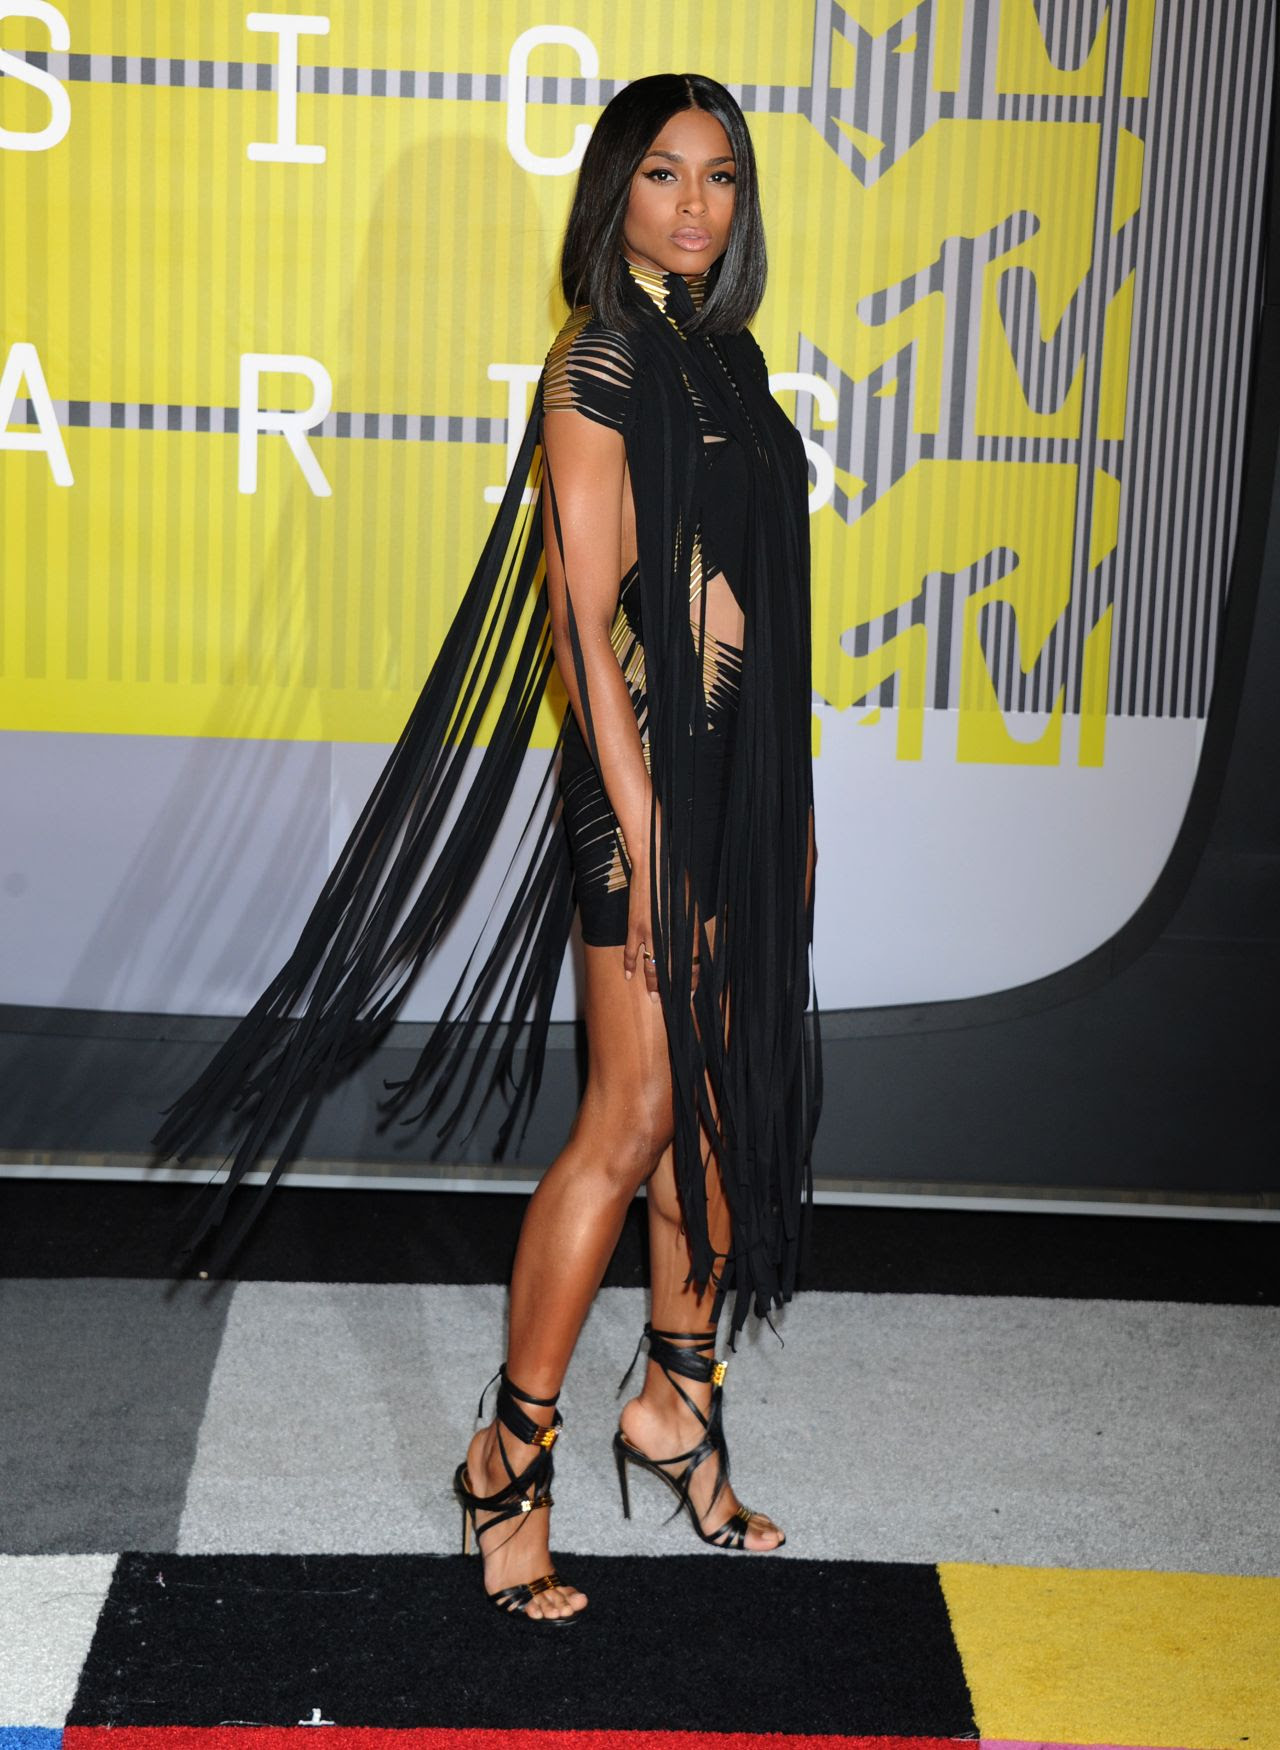 http://celebmafia.com/wp-content/uploads/2015/08/ciara-2015-mtv-video-music-awards-at-microsoft-theater-in-los-angeles_3.jpg